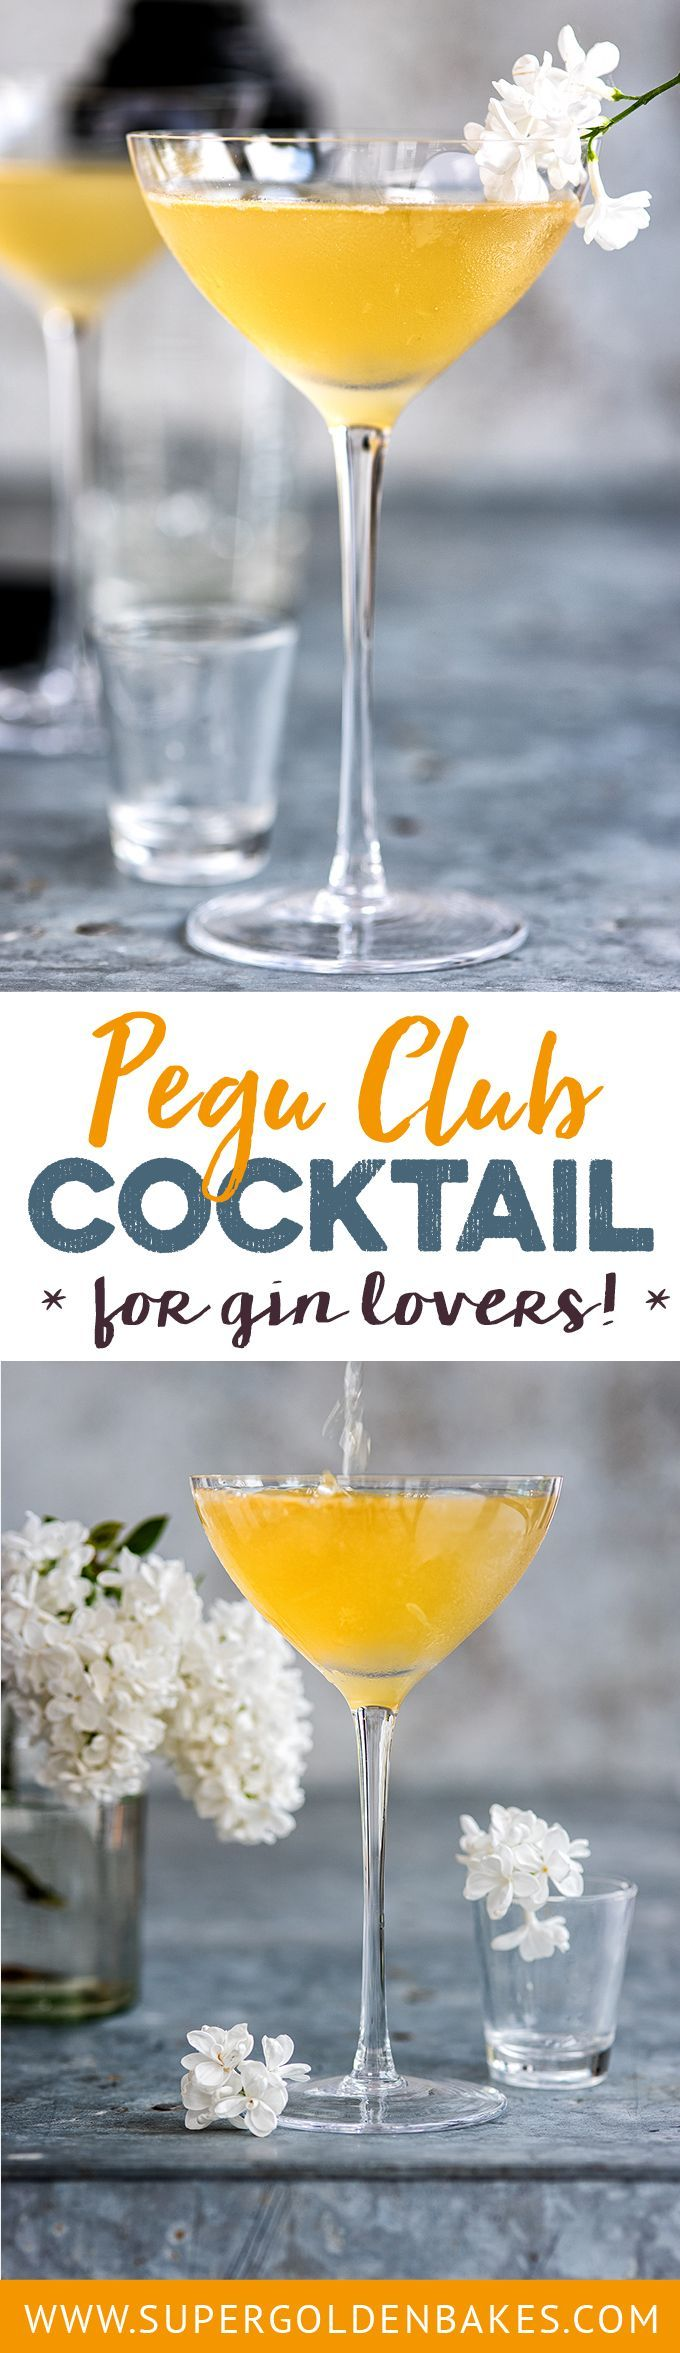 The Pegu Club Cocktail is overdue a revival! Gin, orange liqueur, lime juice a bitters make for a perfectly balanced and potent drink | Supergolden Bakes